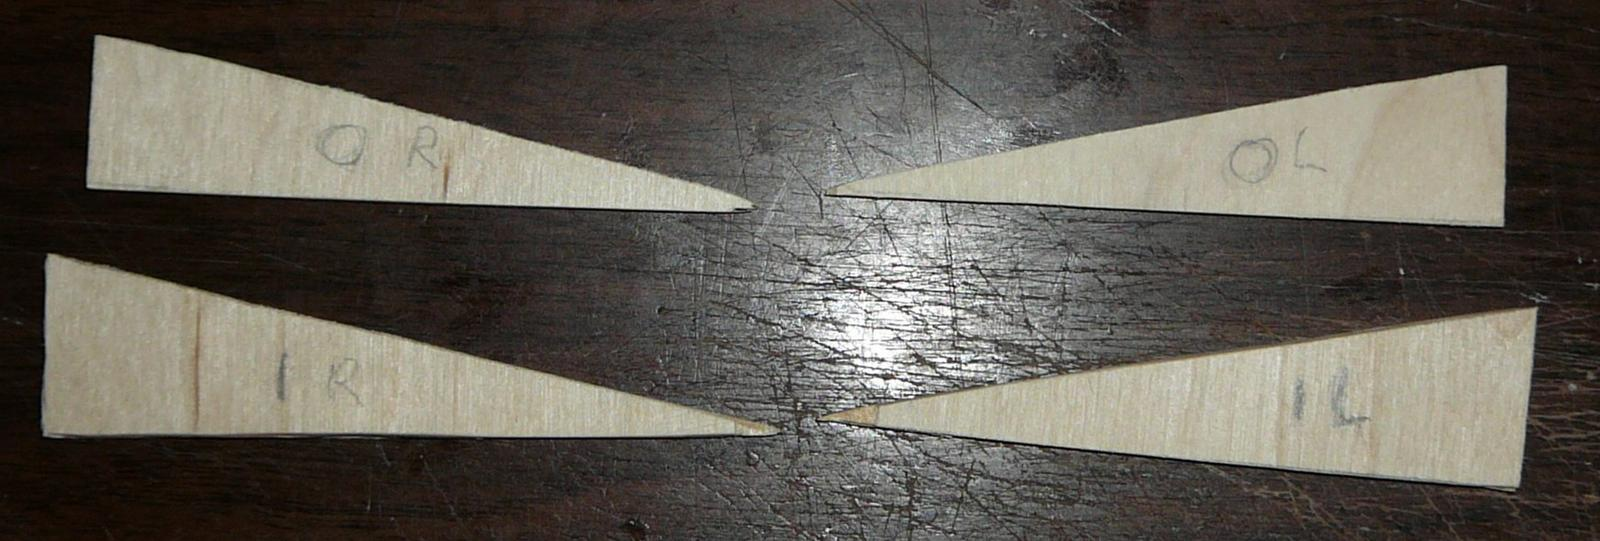 Plywood caps for wing cutouts.